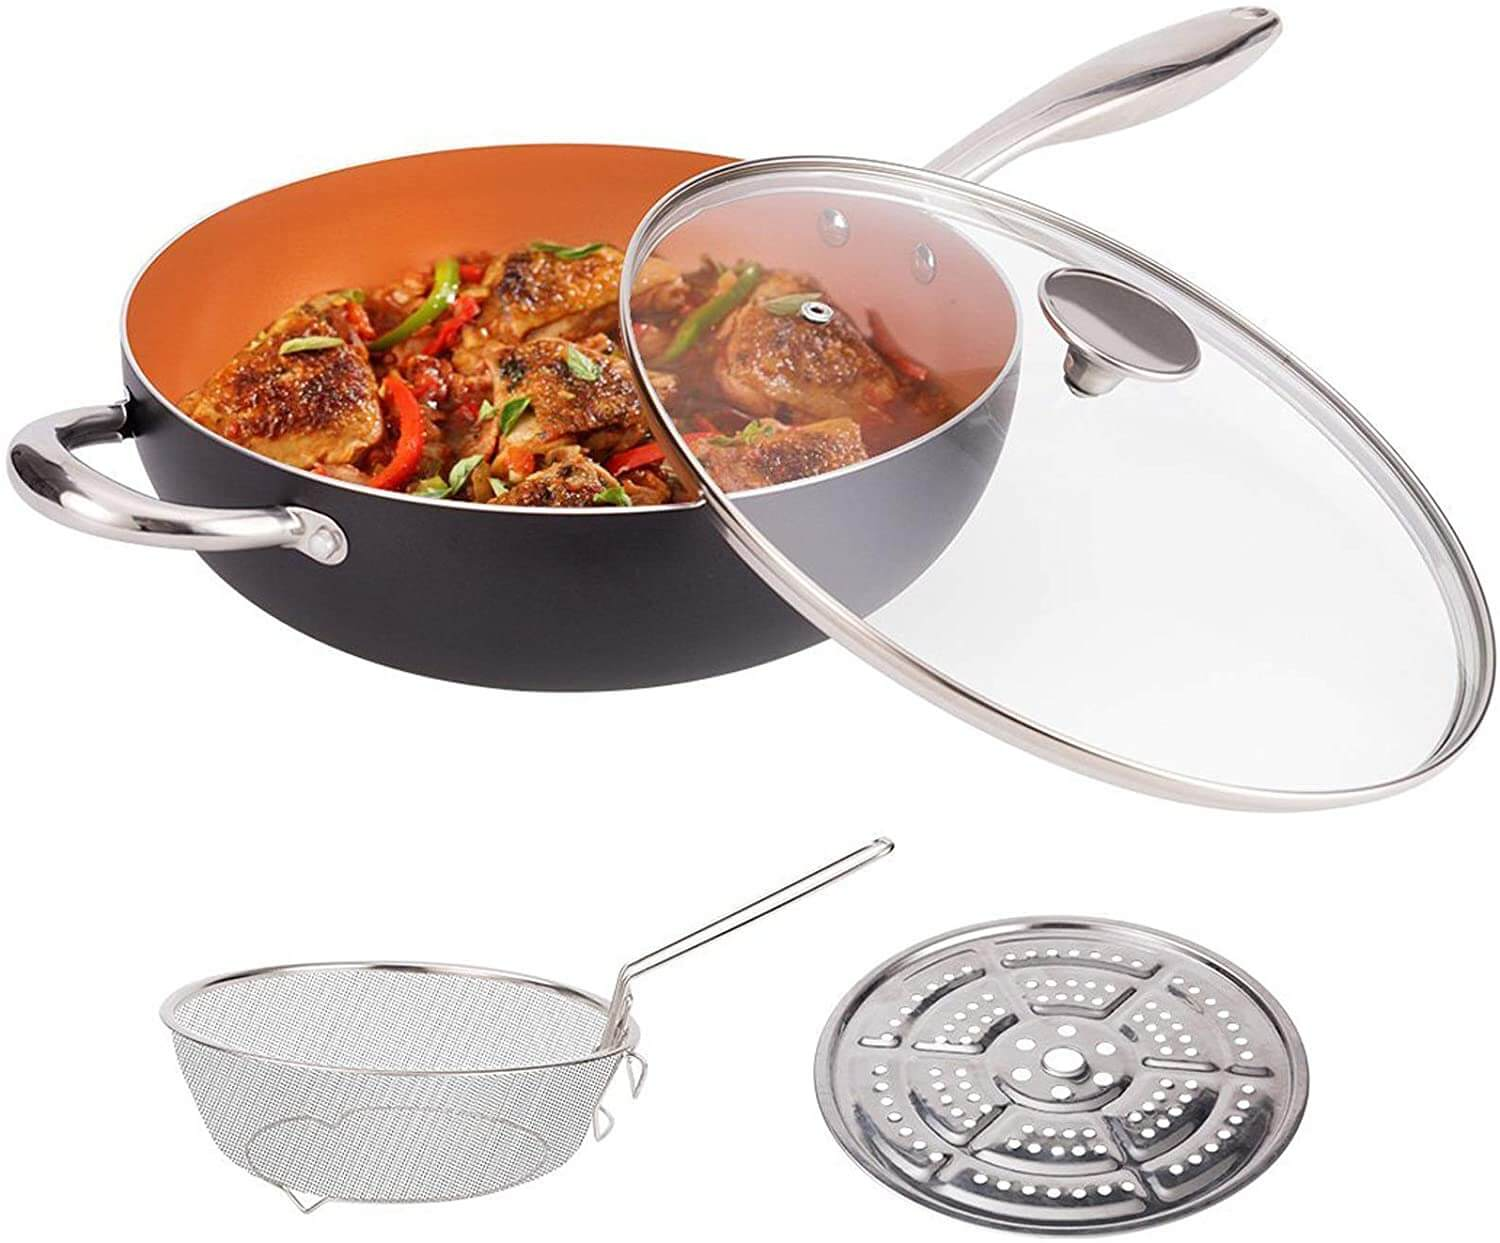 TeChef APW30 Stir Fry Pan